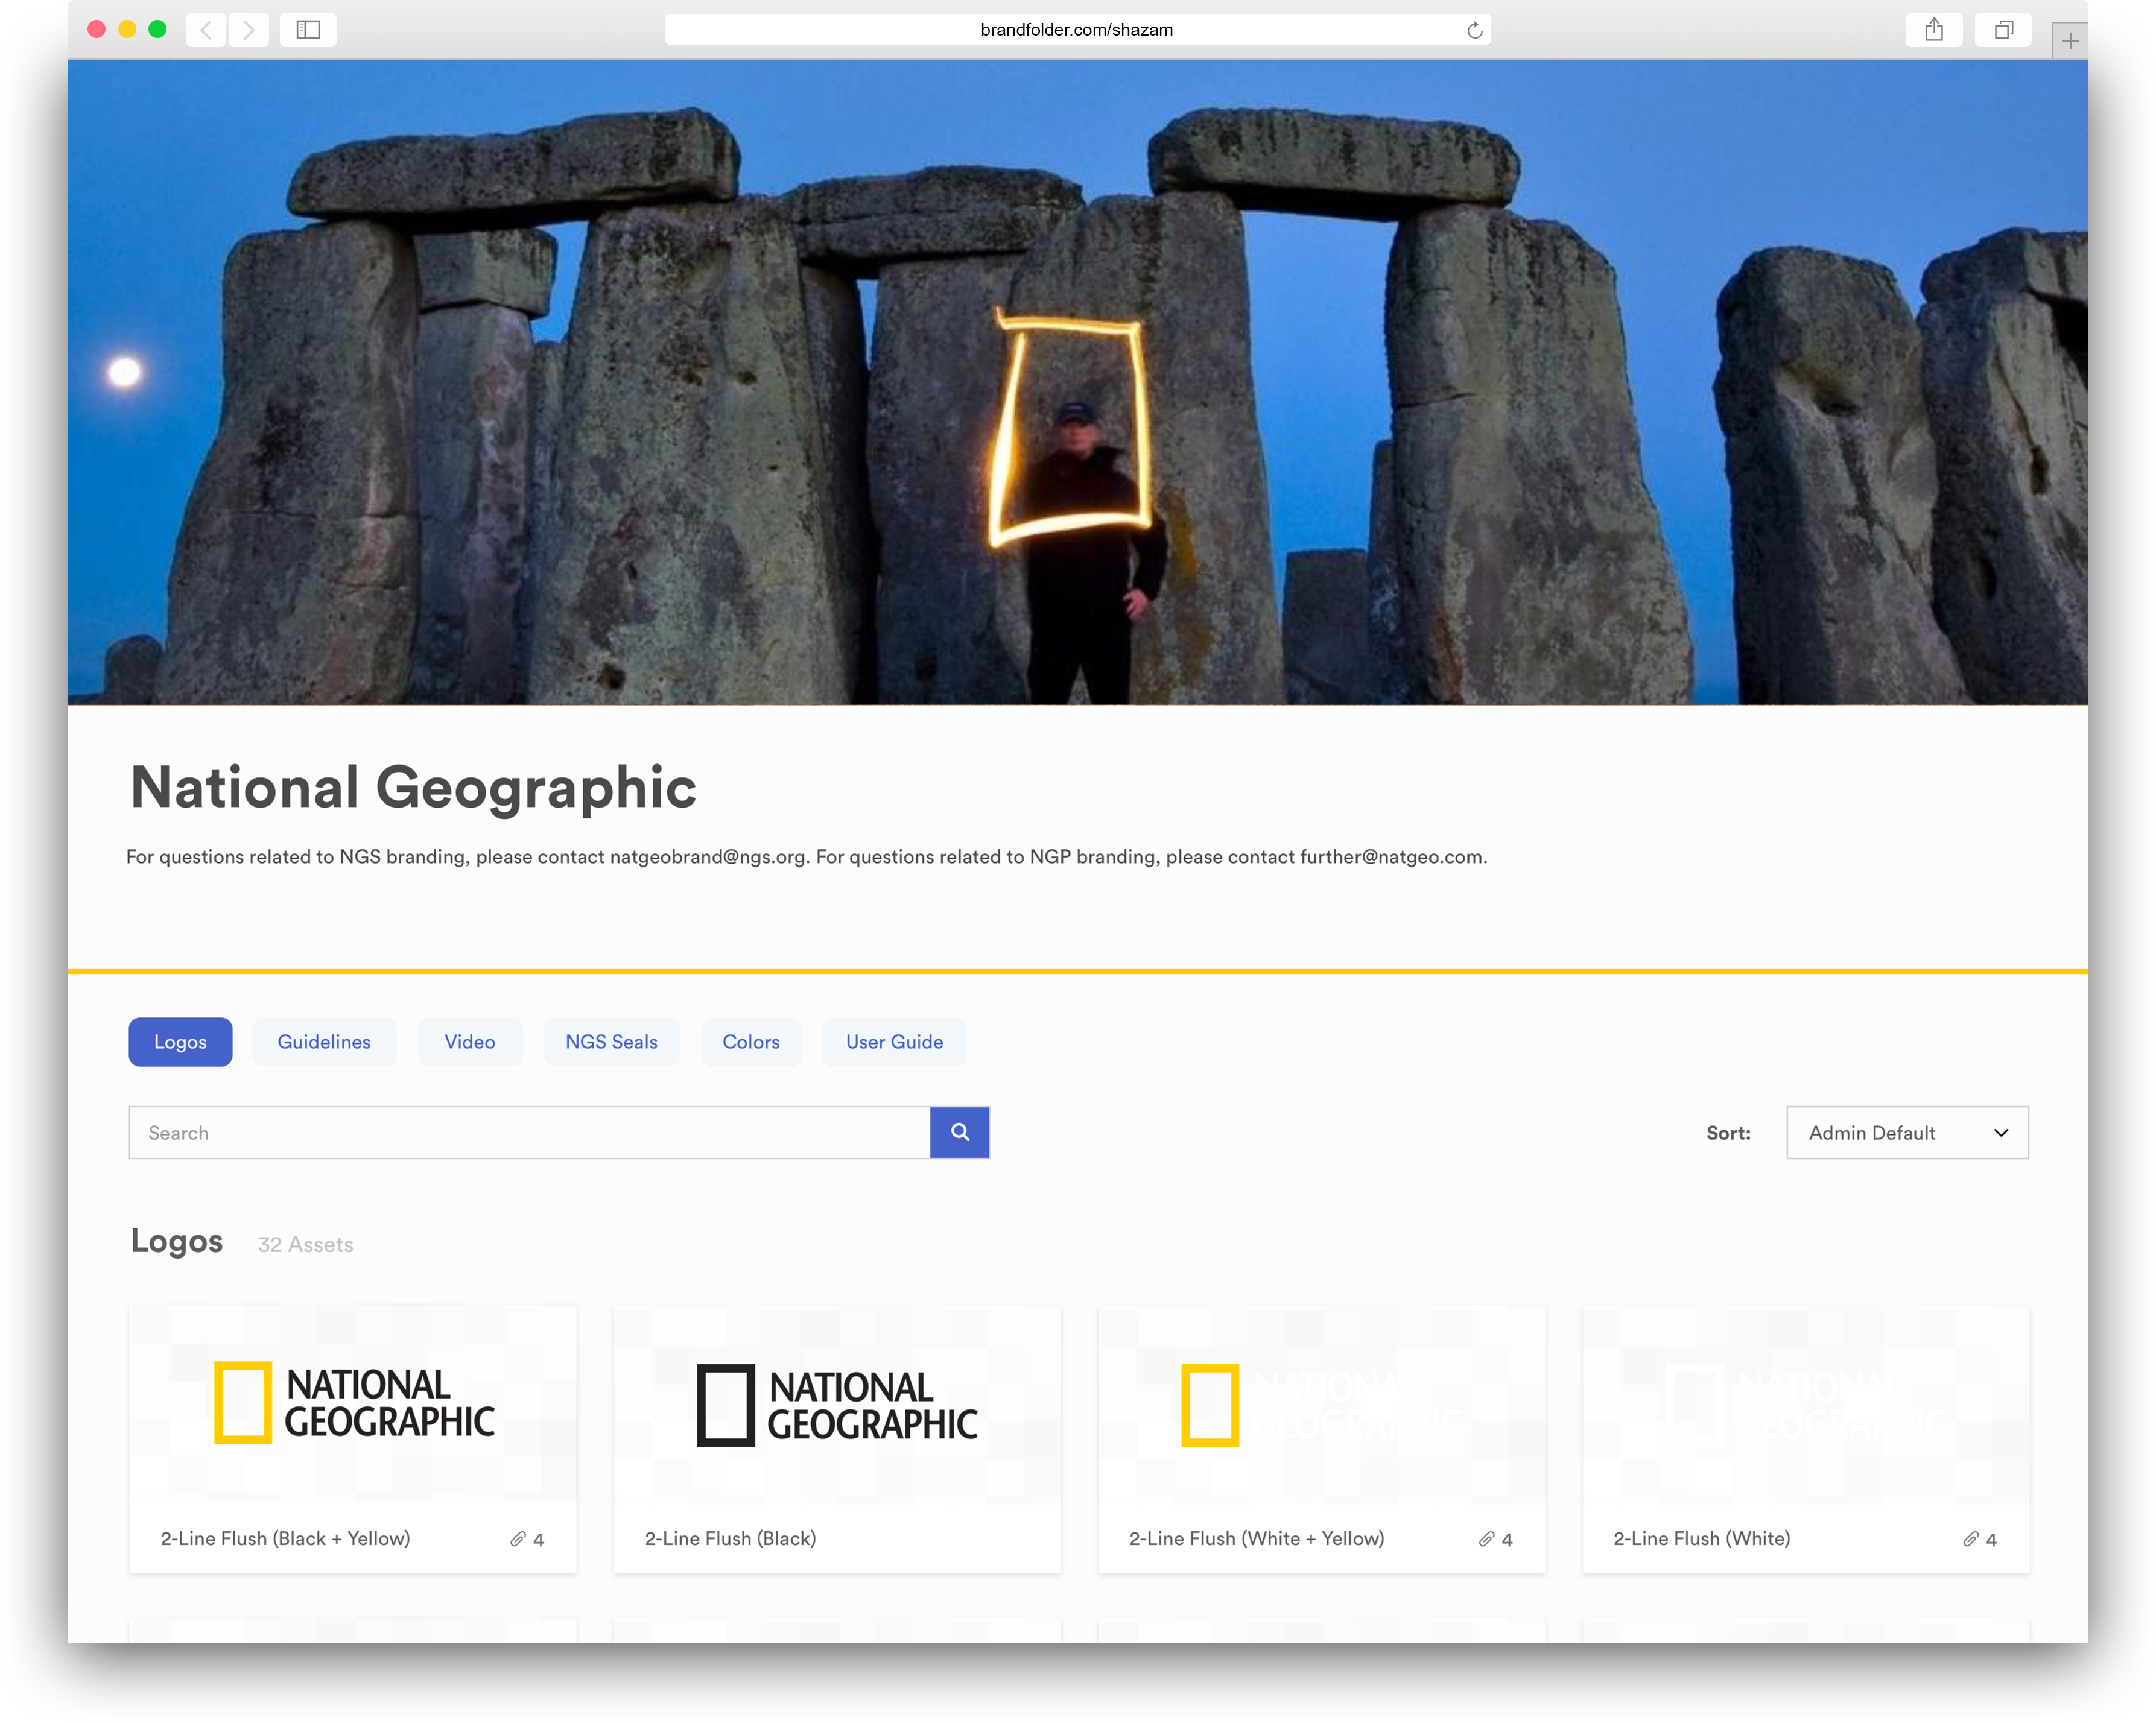 example of national geographic's brandfolder